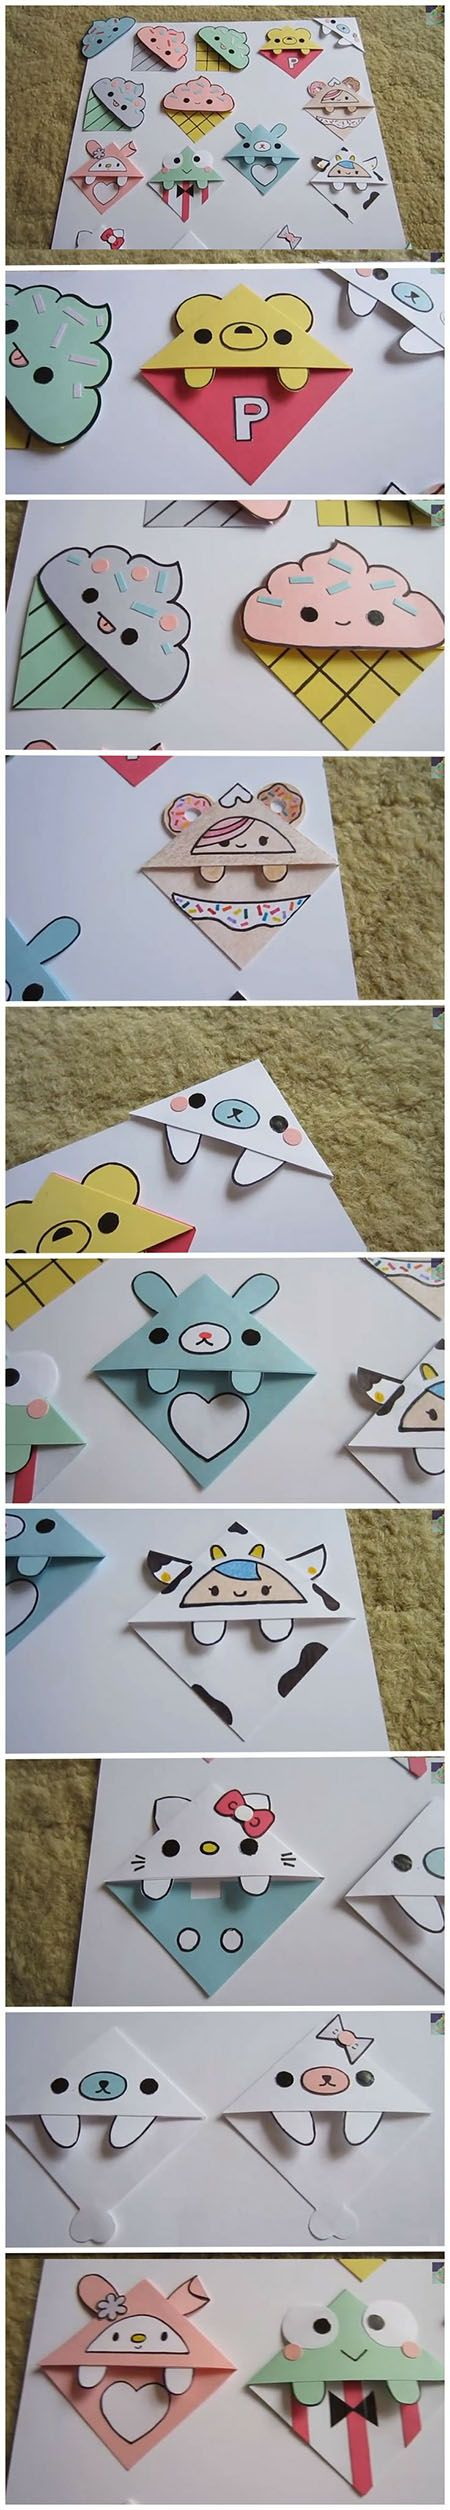 13 Corner Bookmark Collection e1abb2 | DIY